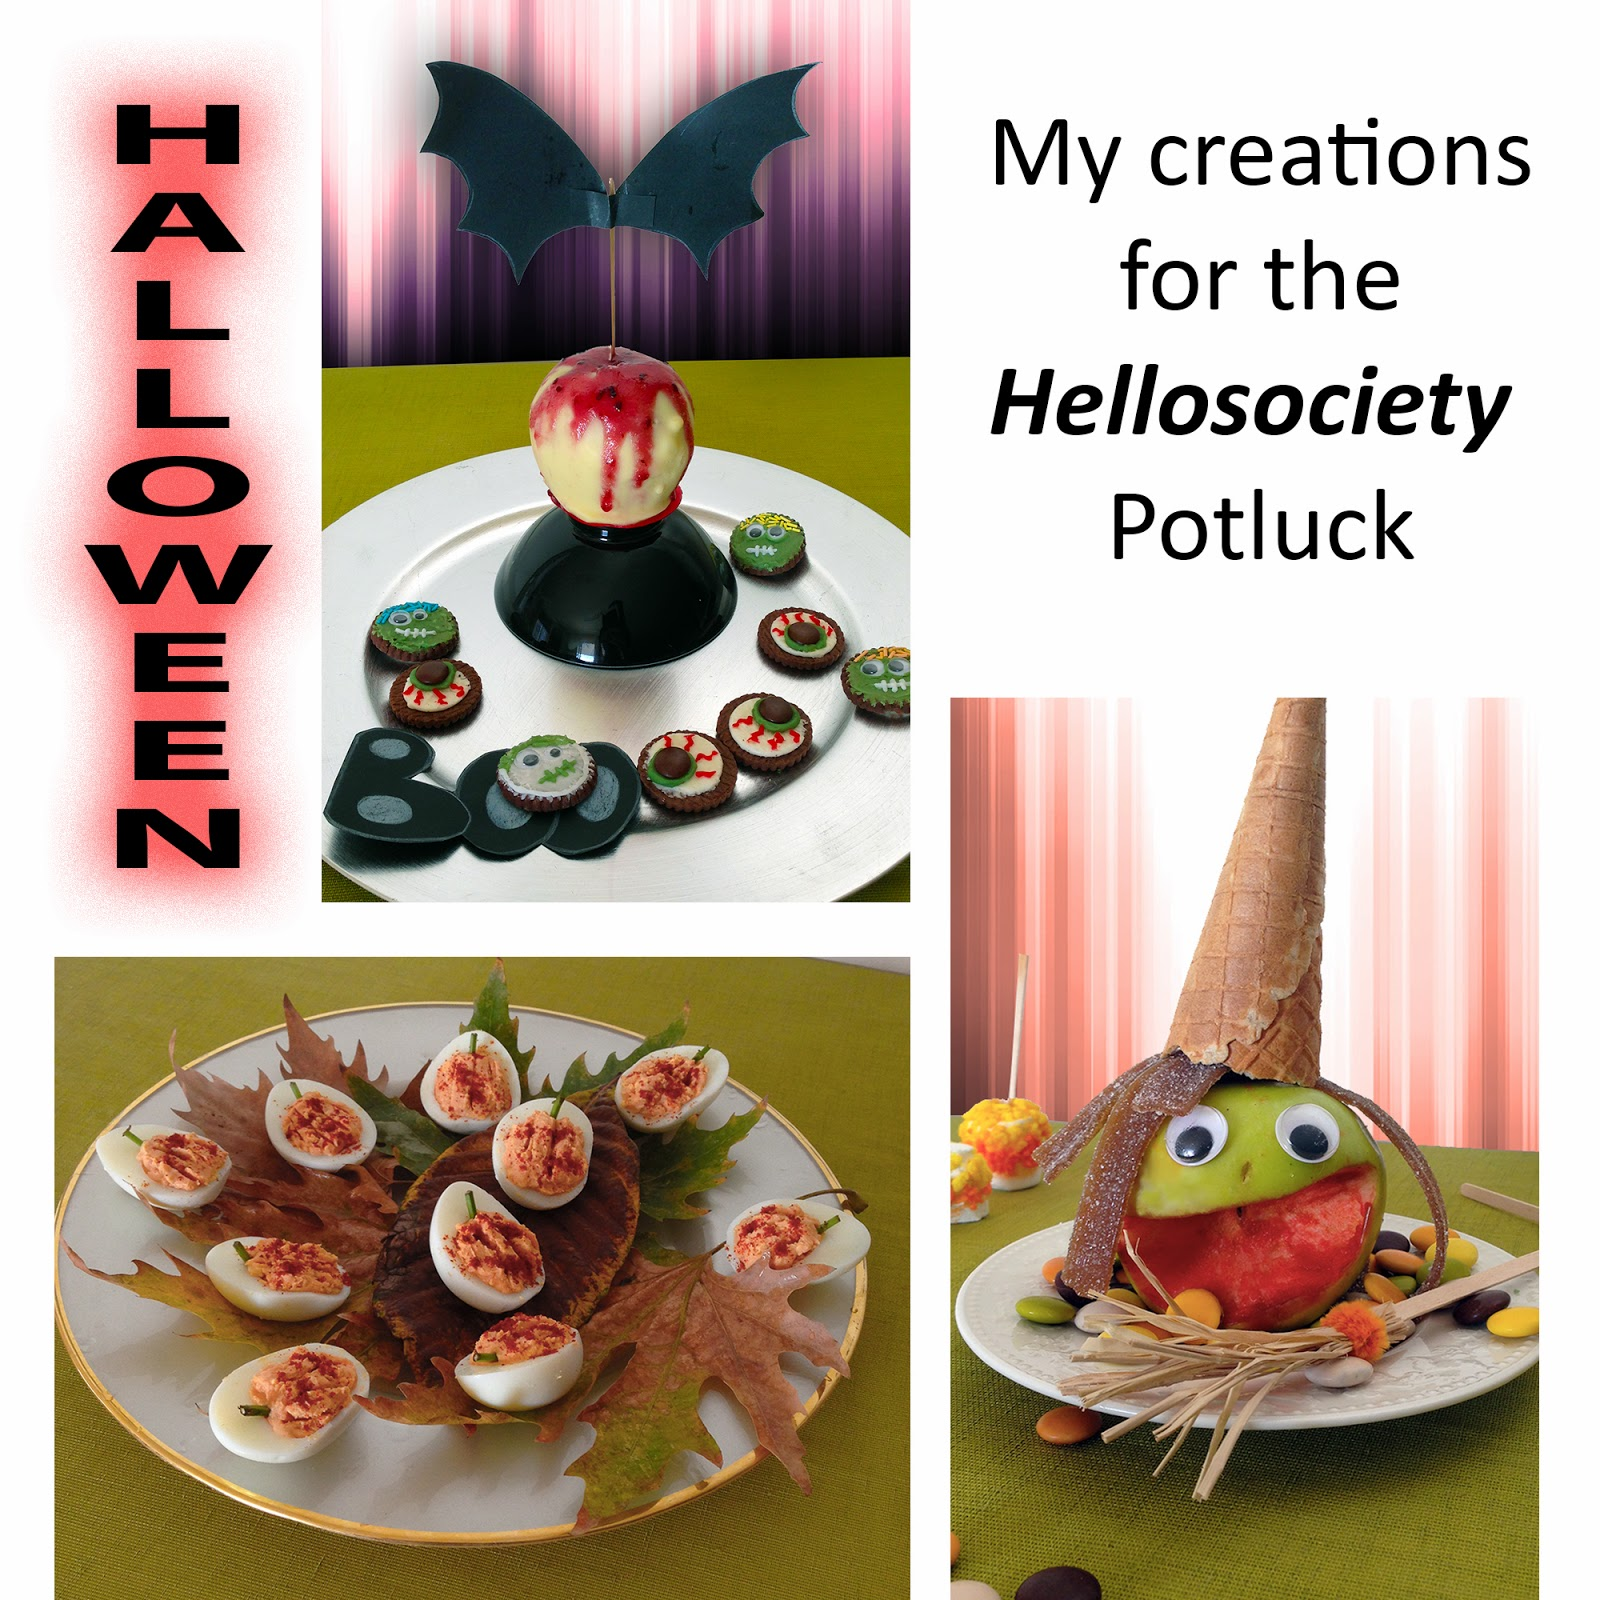 My entries for the Hellosociety Halloween Potluck